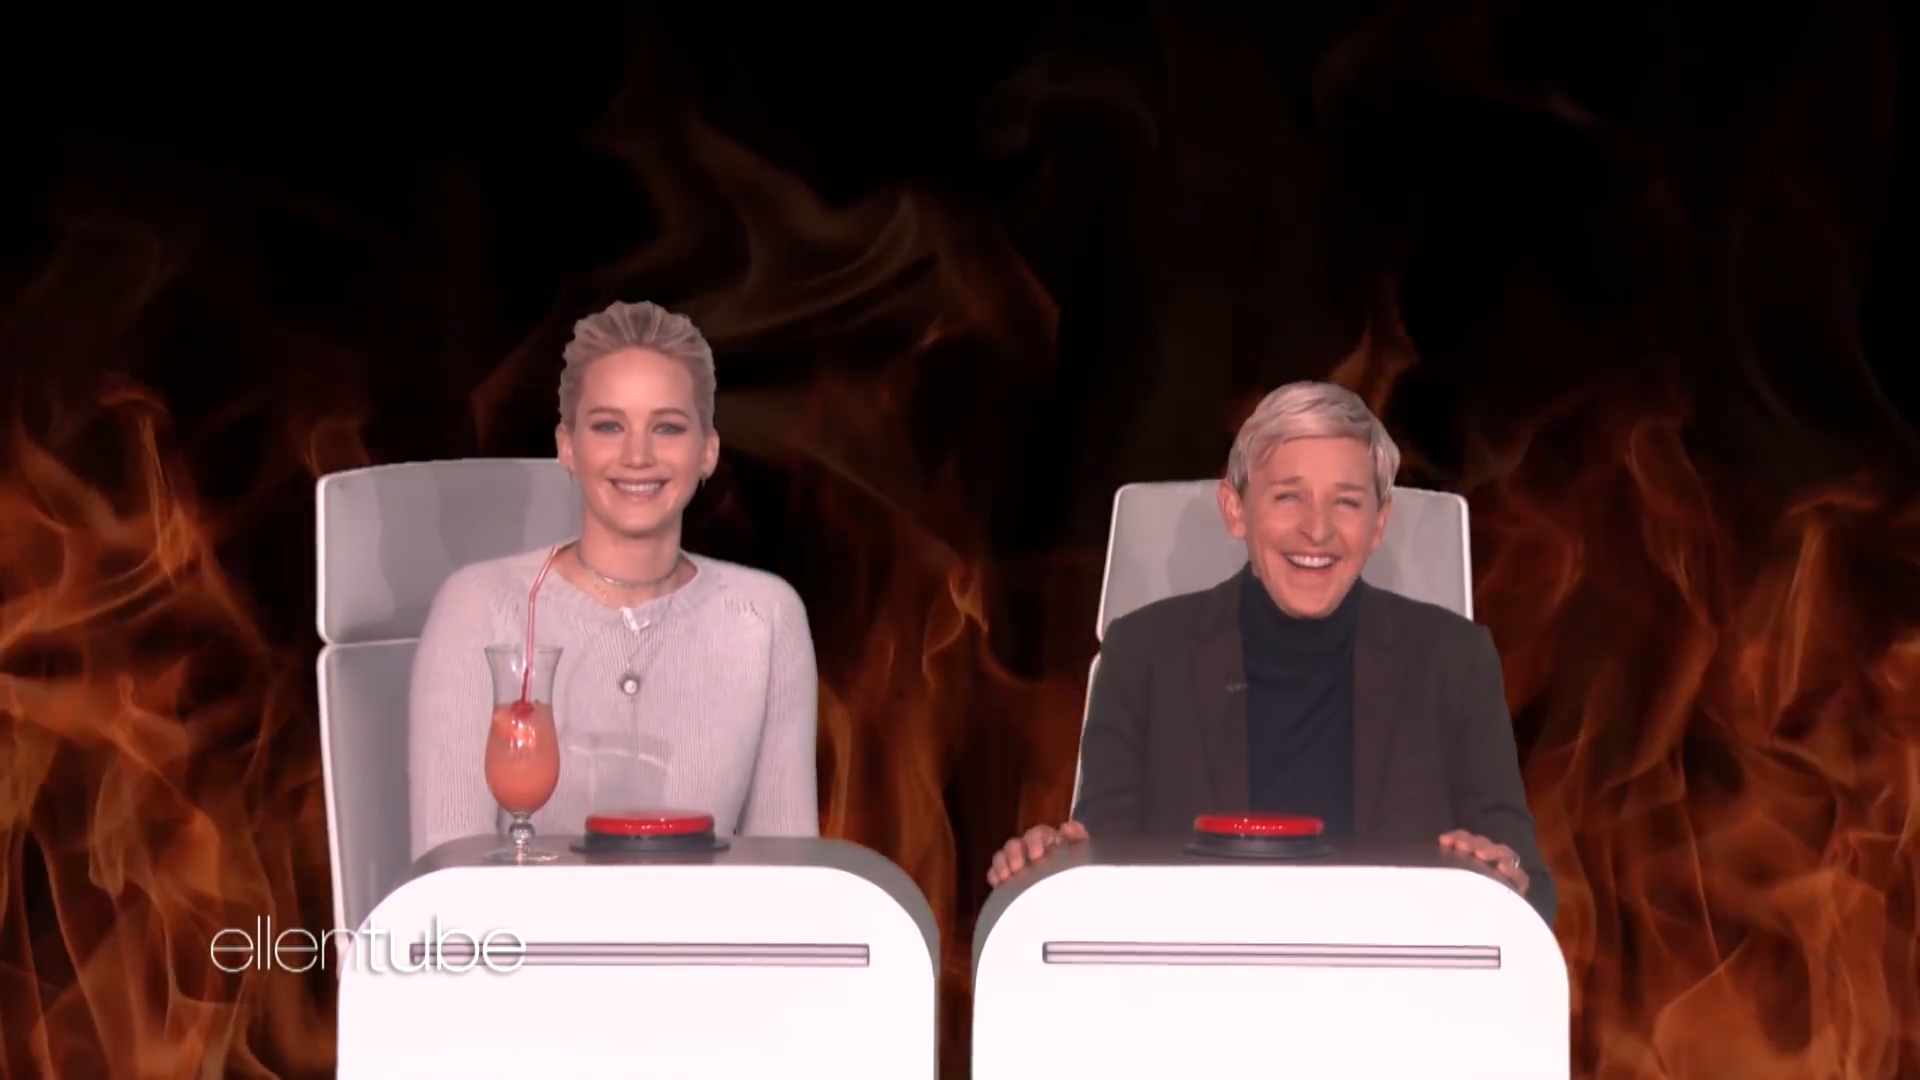 [1] Jennifer Lawrence Answers Ellen's 'Burning Questions'